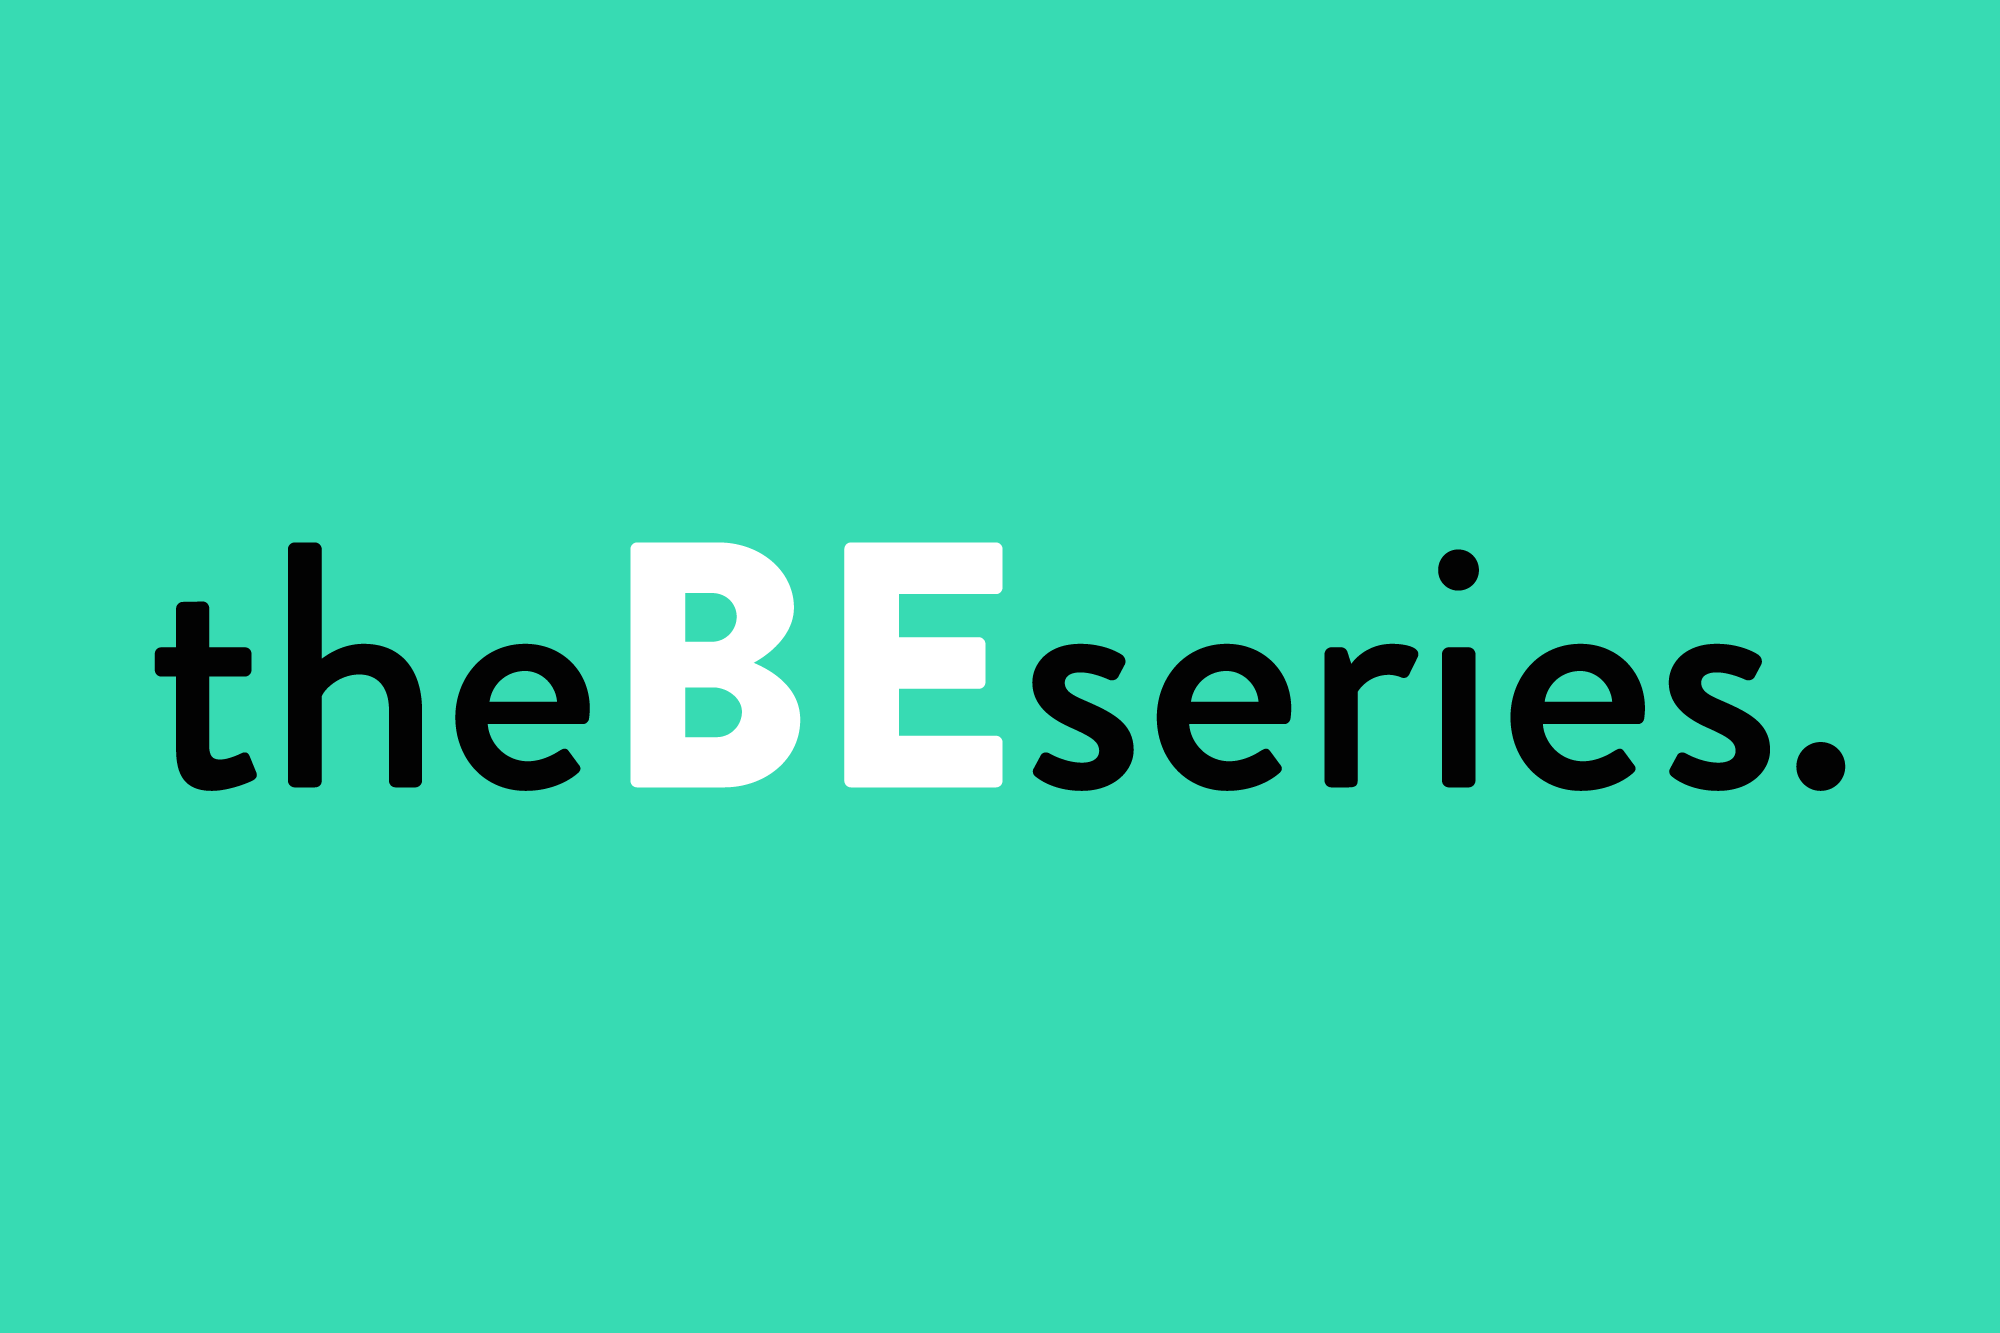 the BE series